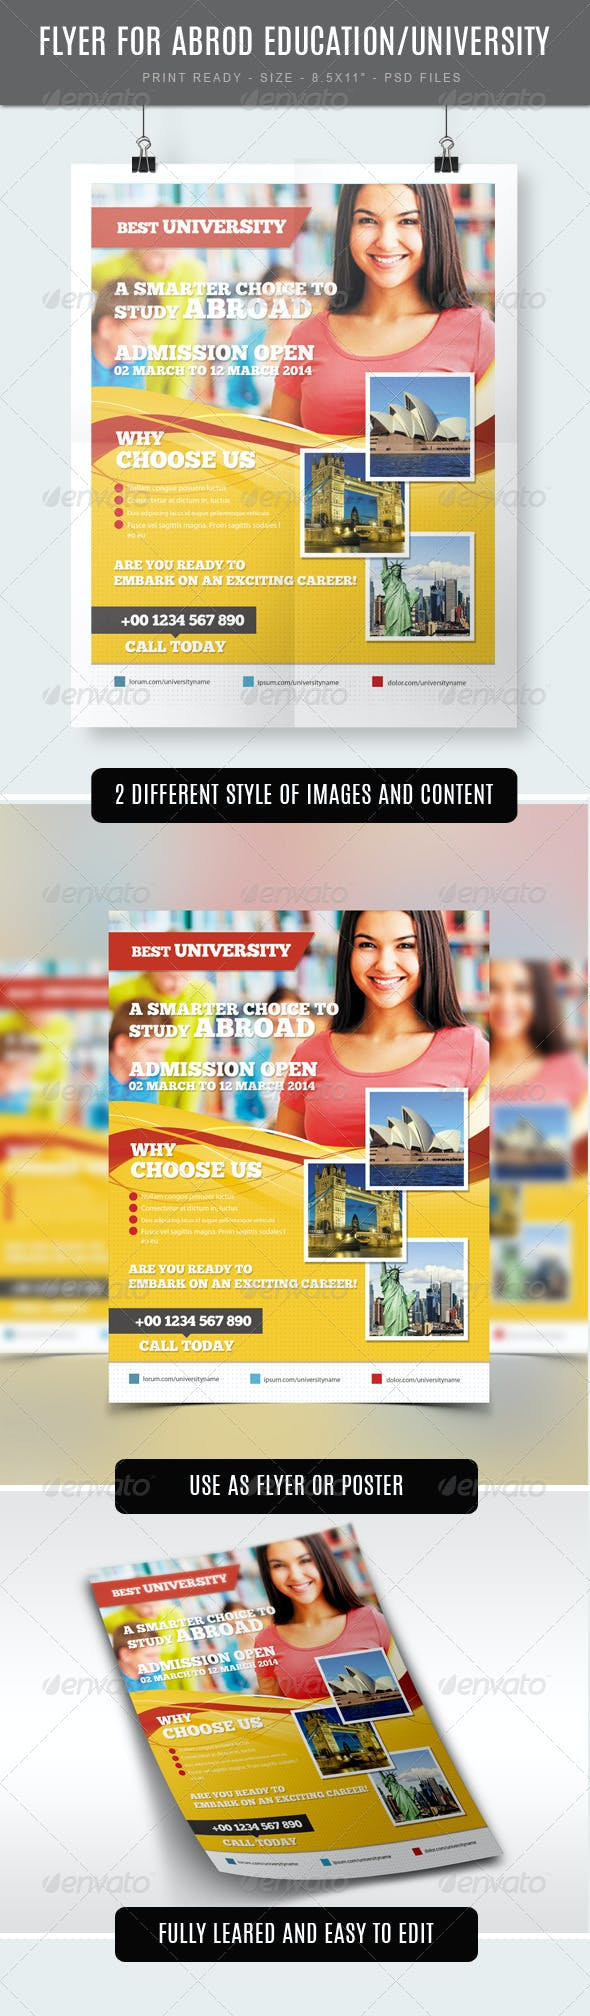 study abroad university college flyer template by studiorgb